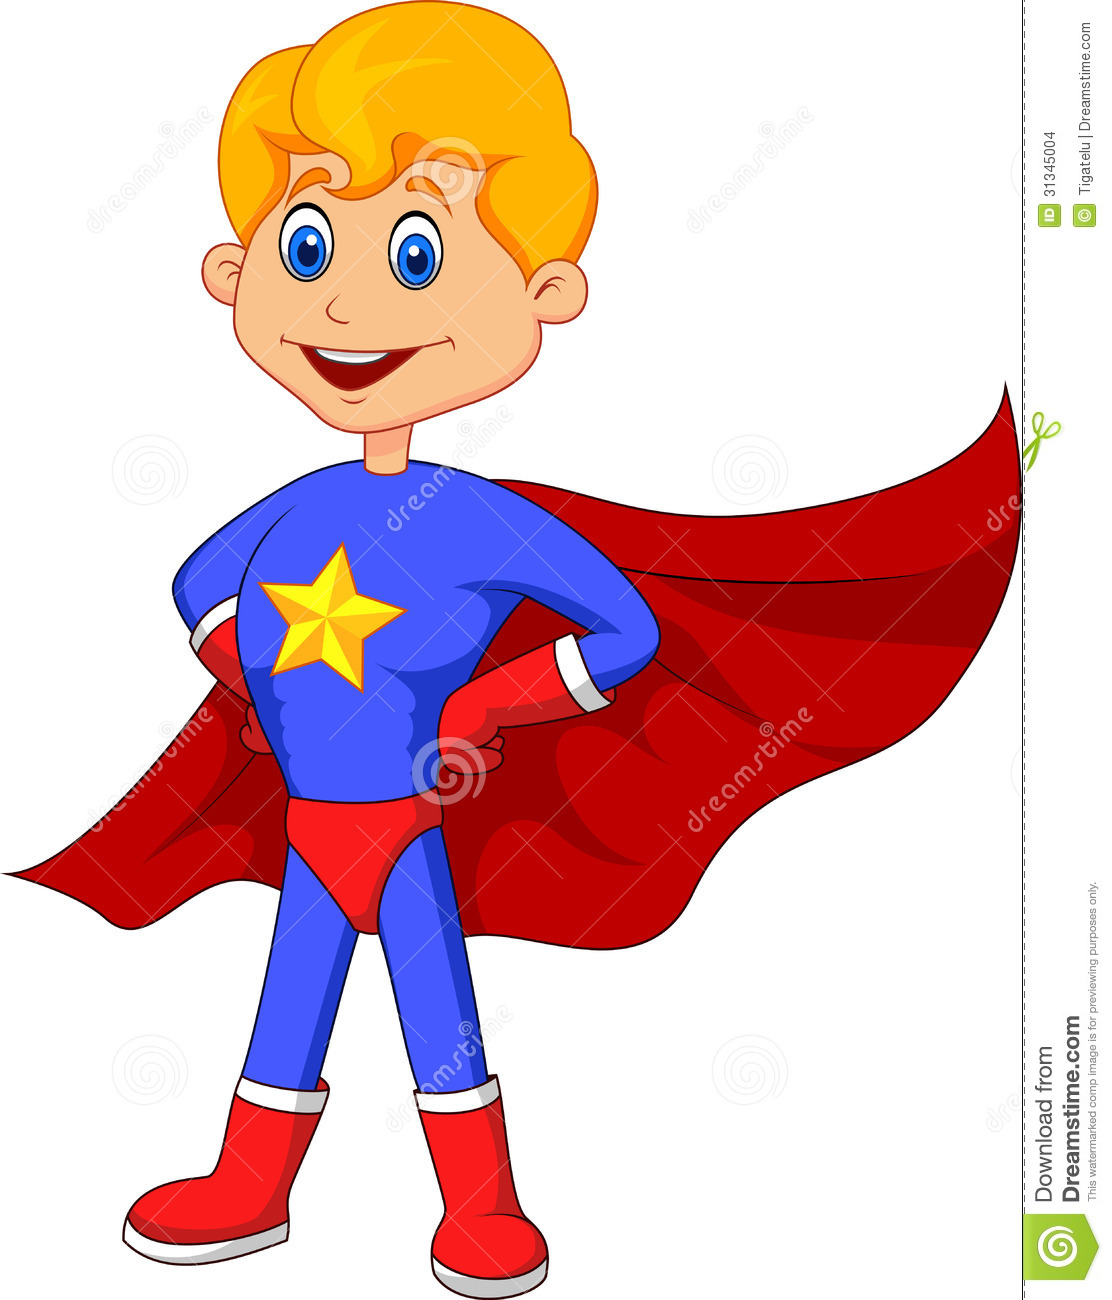 cartoon illustration kid - Cartoon Kid Images